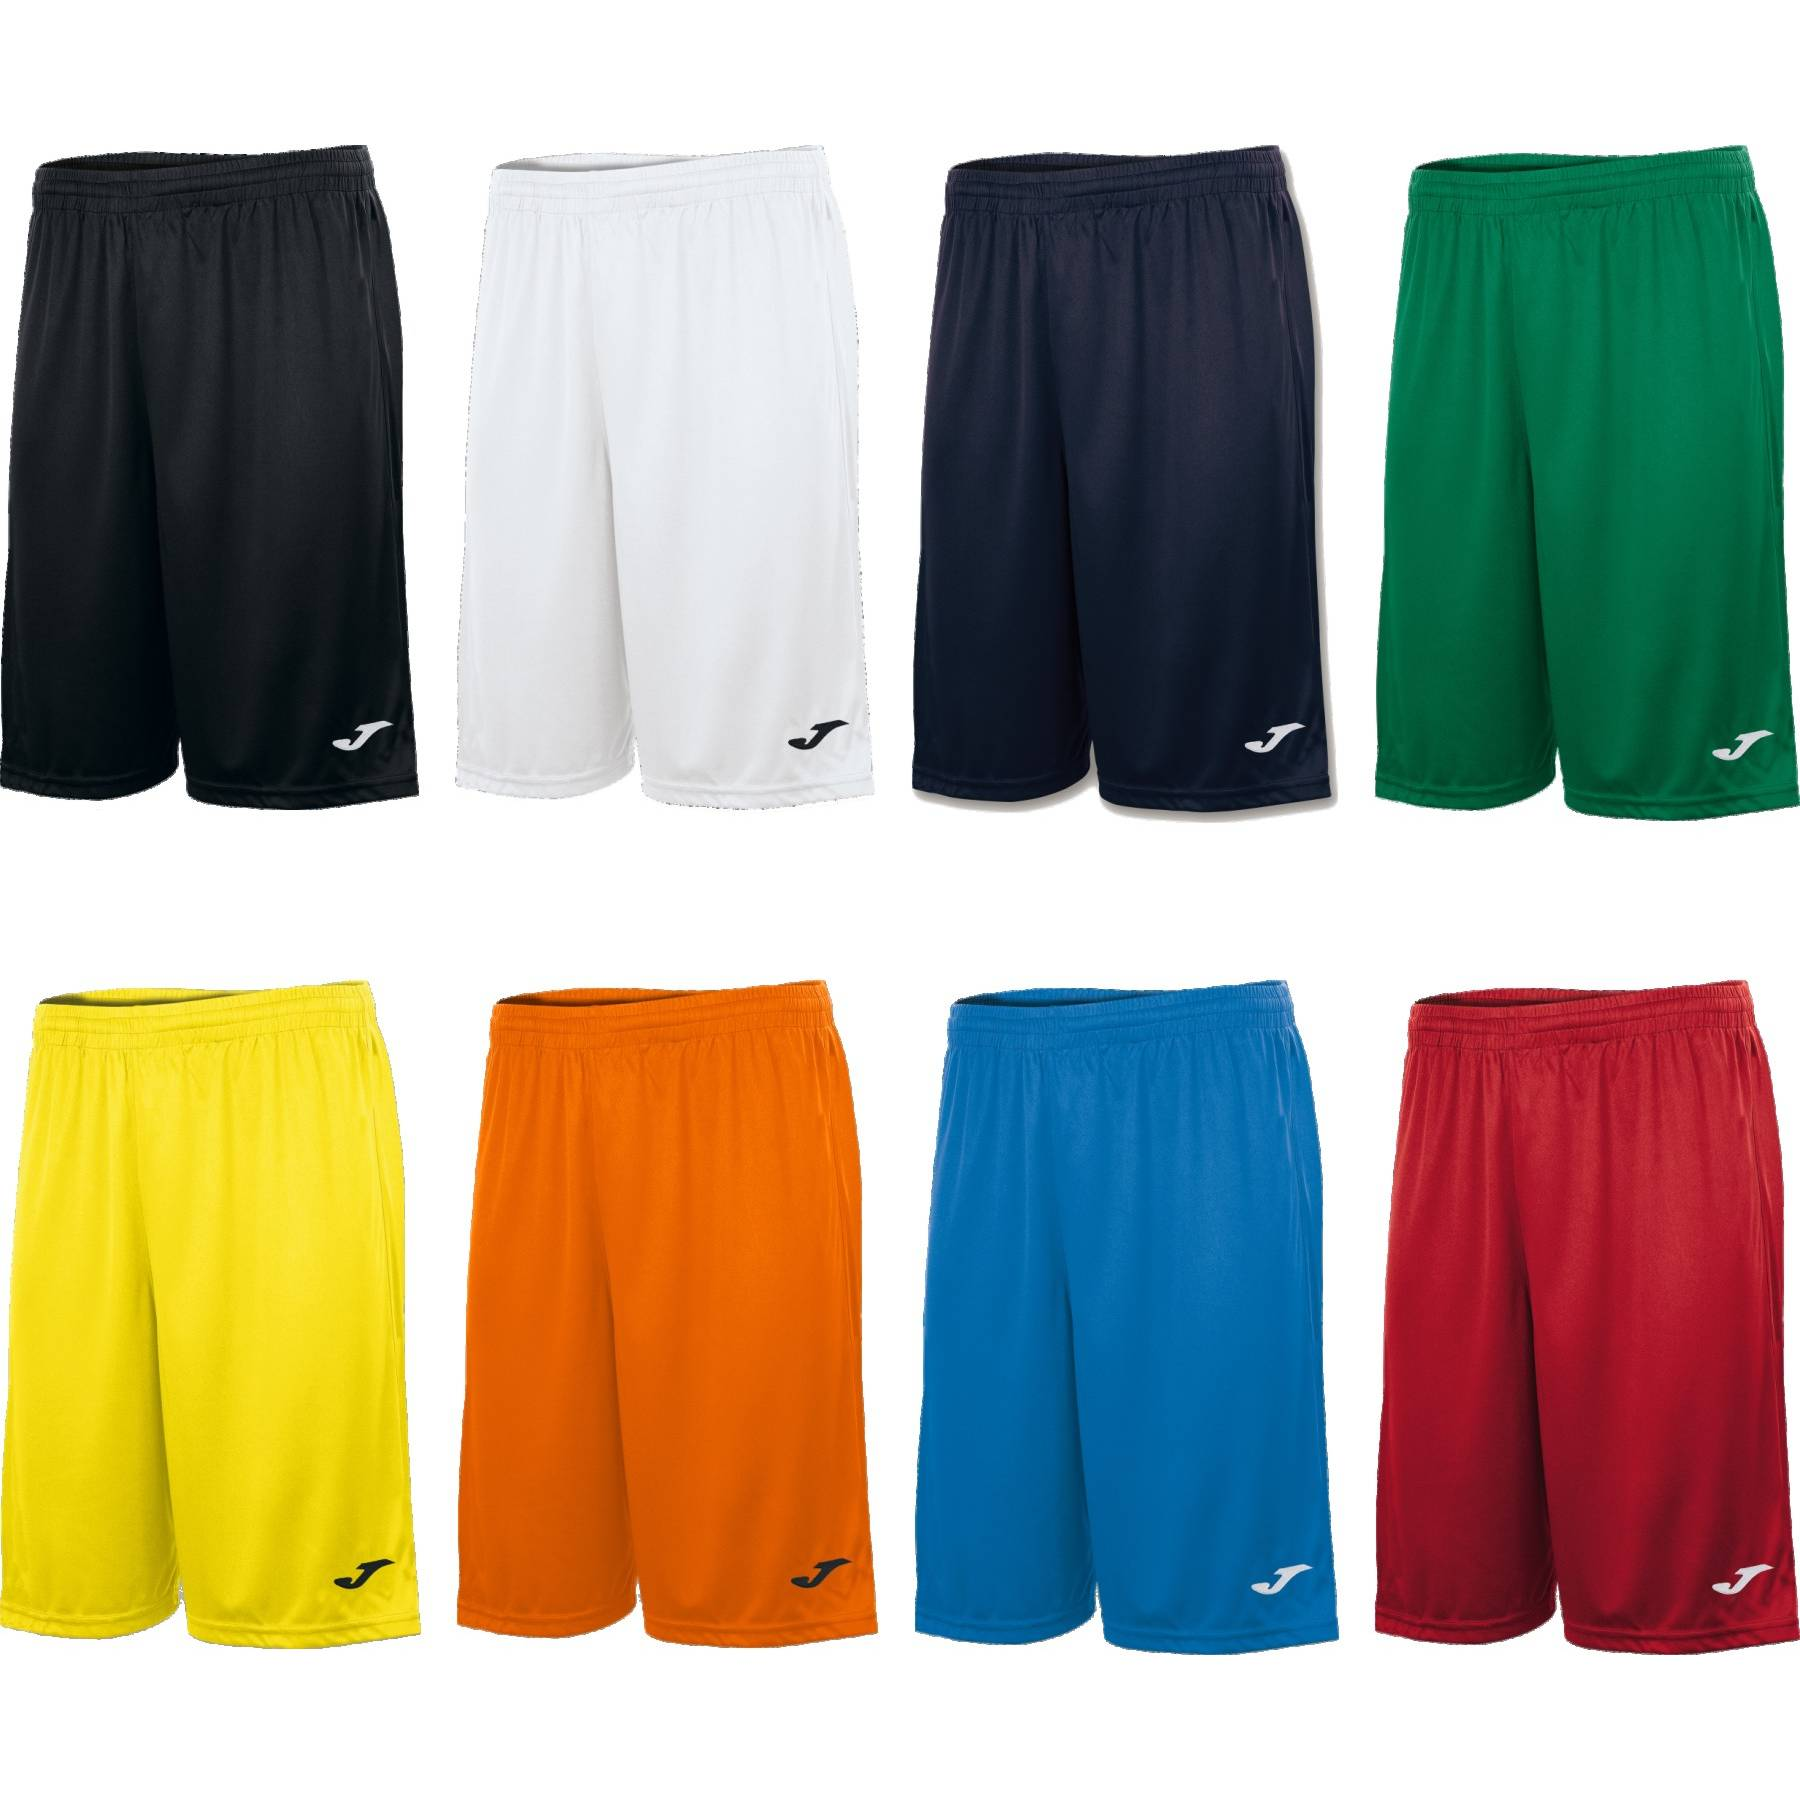 Teamwear - Joma Nobel Long Shorts